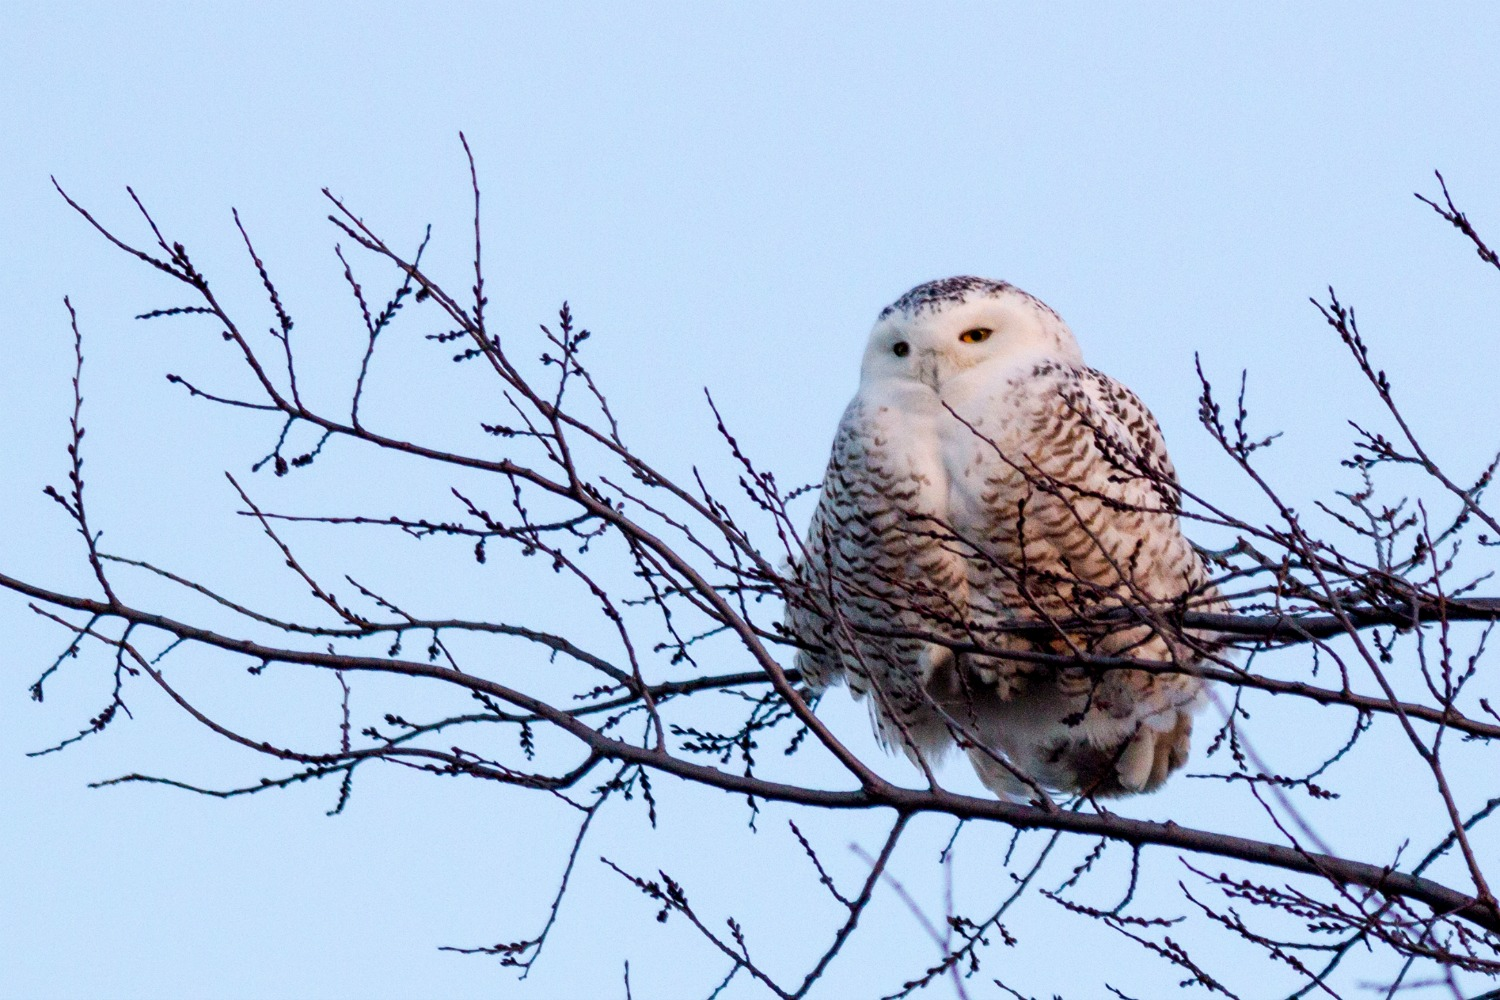 Snowy Owl Perched on a Branch